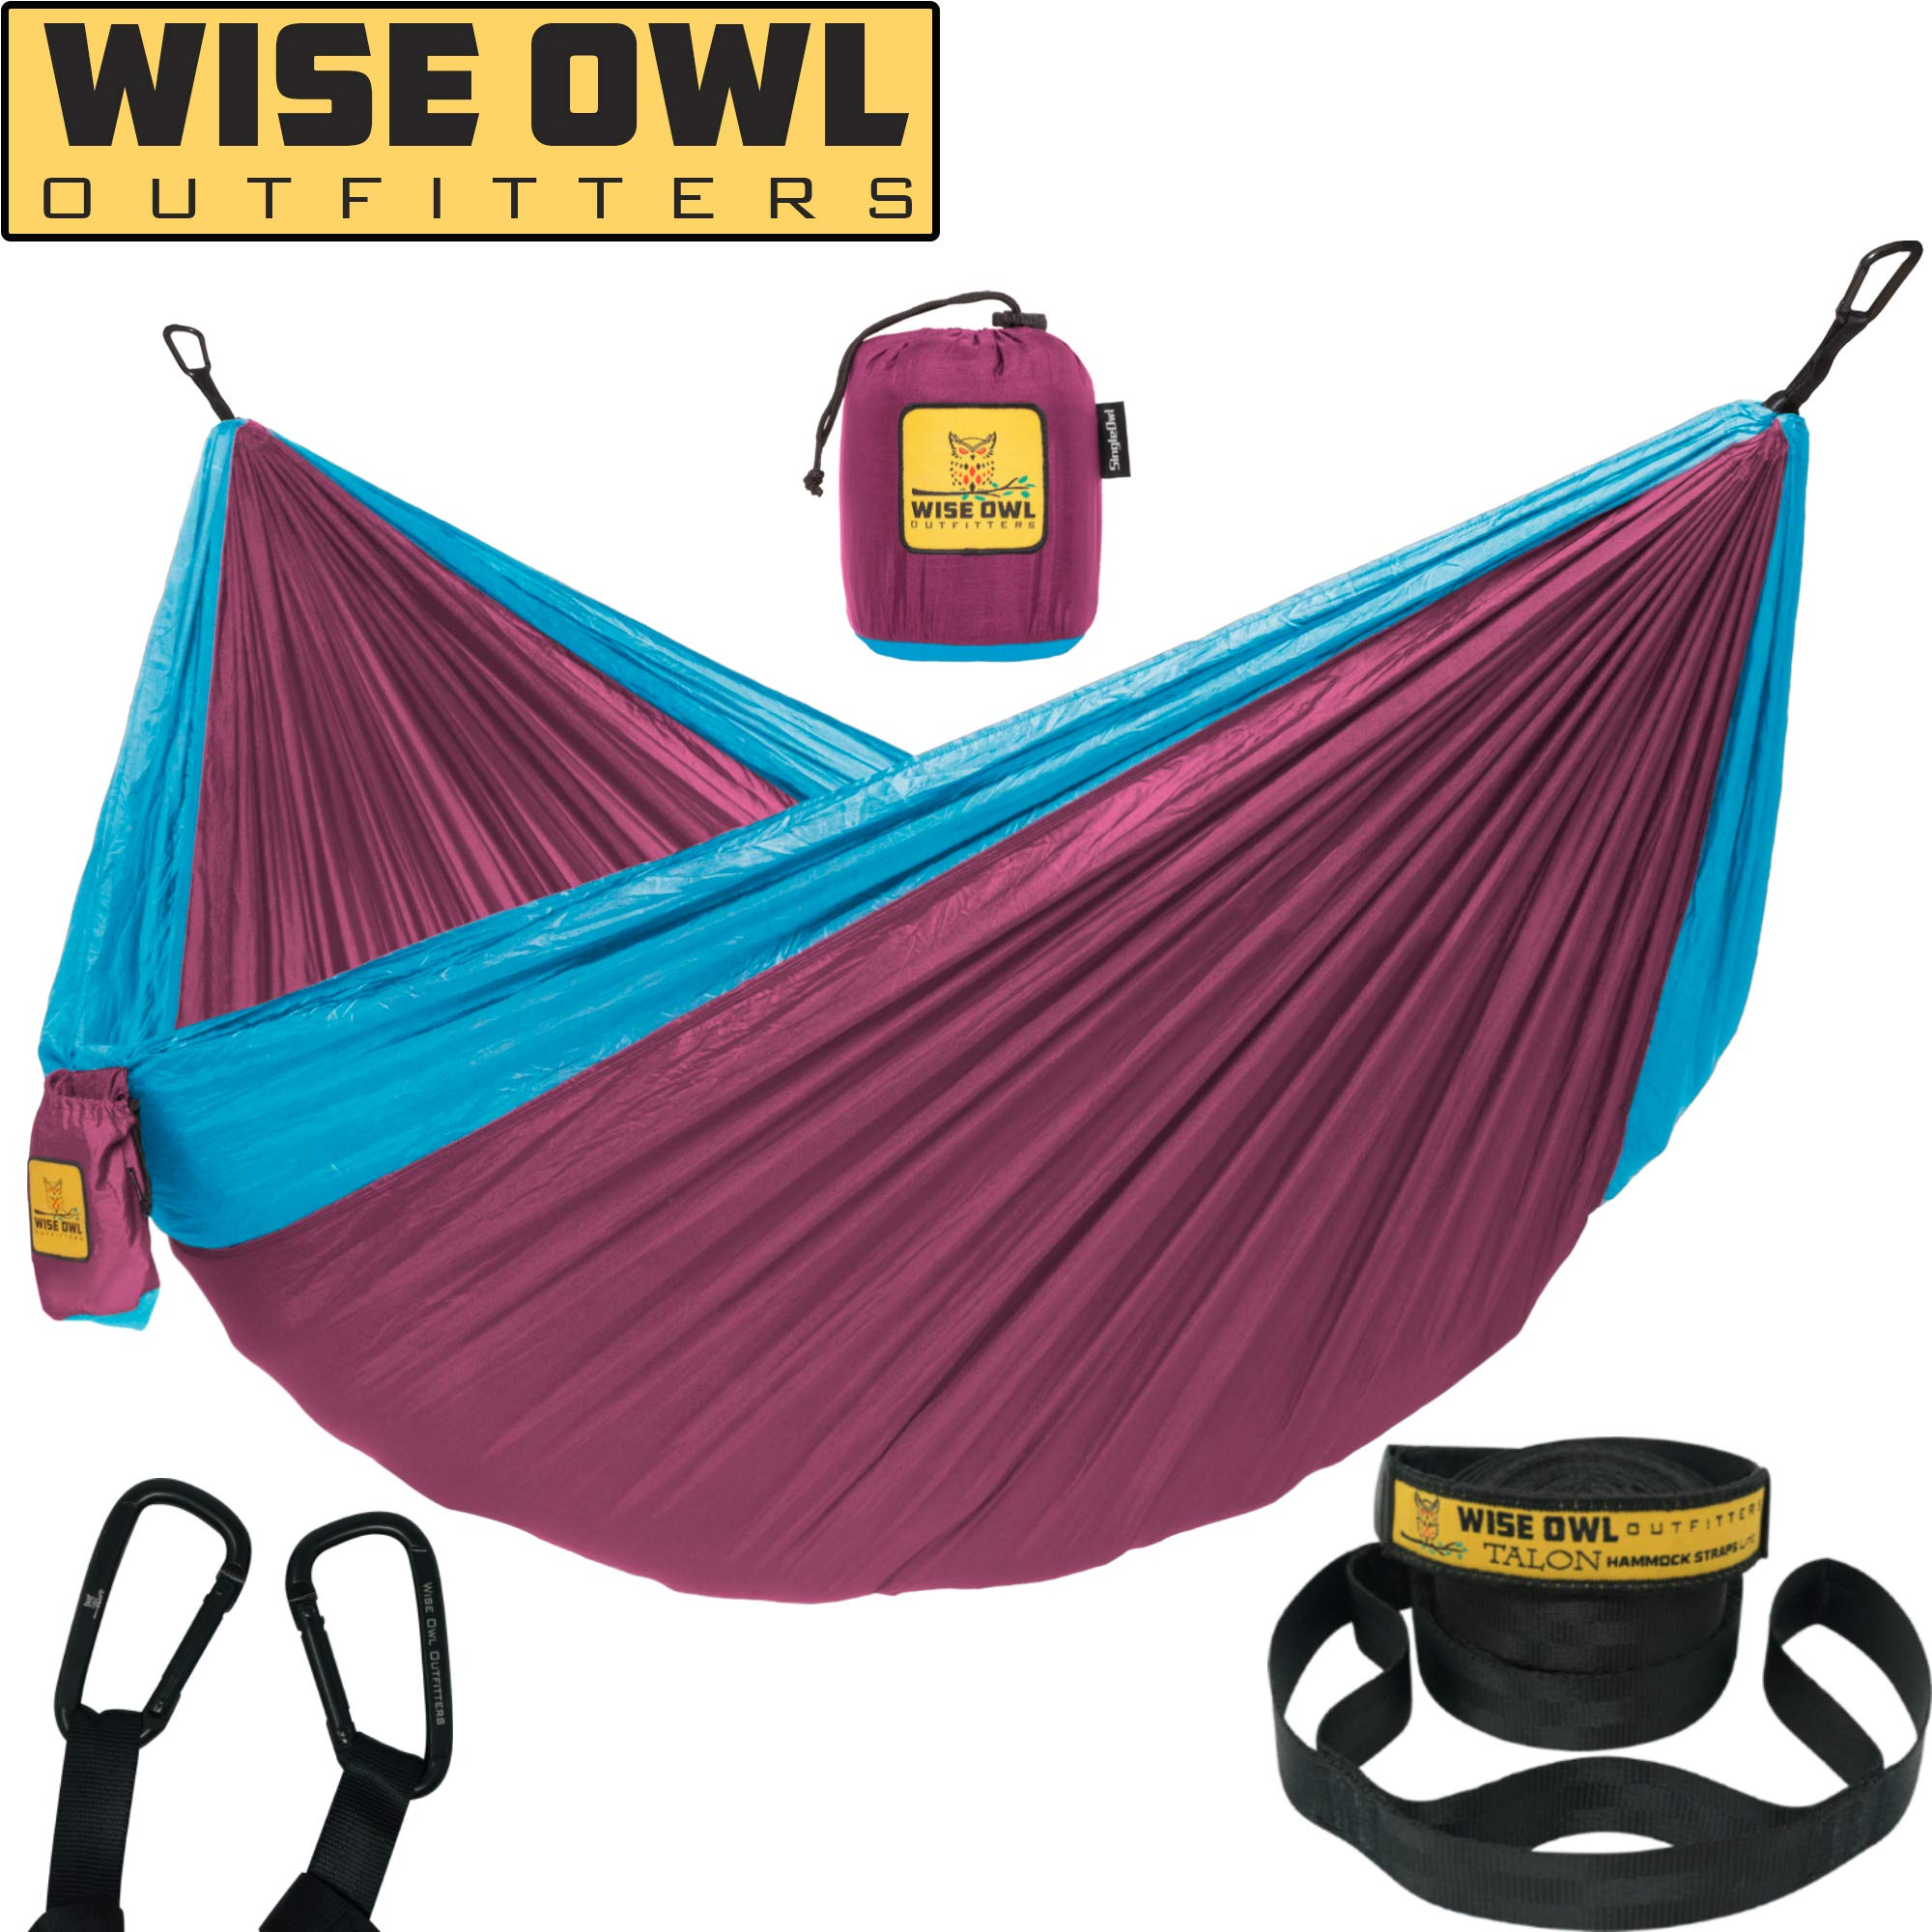 Wise Owl Outfitters Hammock Camping Double & Single with Tree Straps - USA Based Hammocks Brand Gear, Indoor Outdoor Backpacking Survival & Travel, Portable SO Fu/Blu